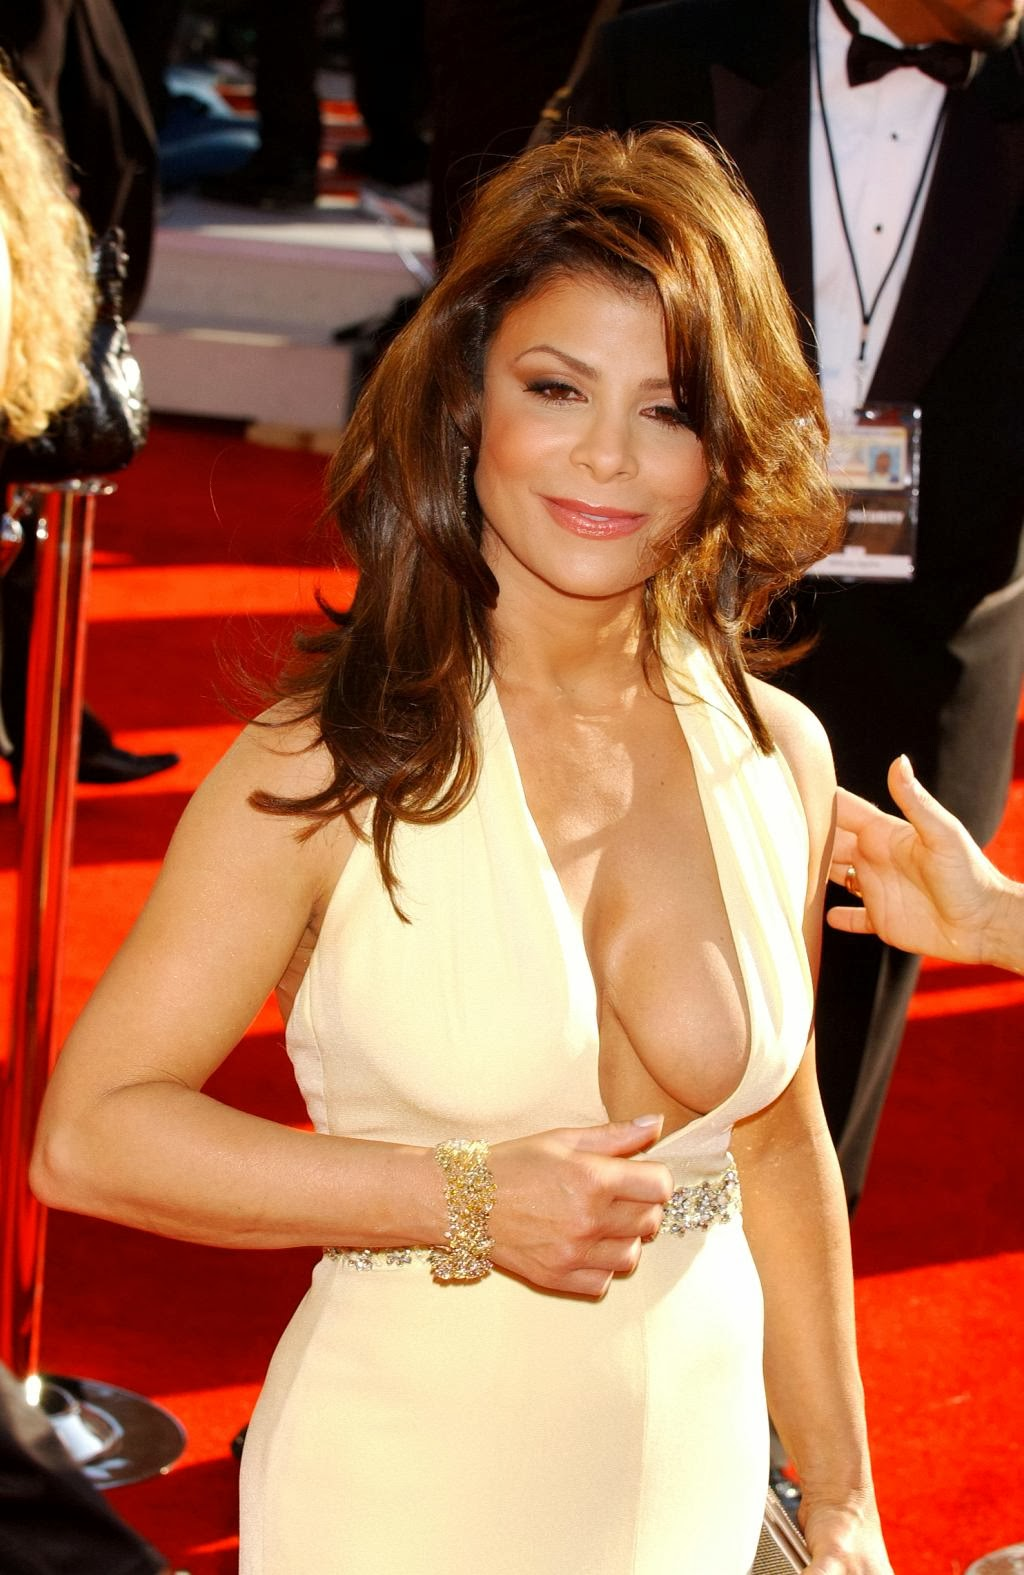 Paula abdul naked pics within showing porn images for paula abdul porn xxx photo 1